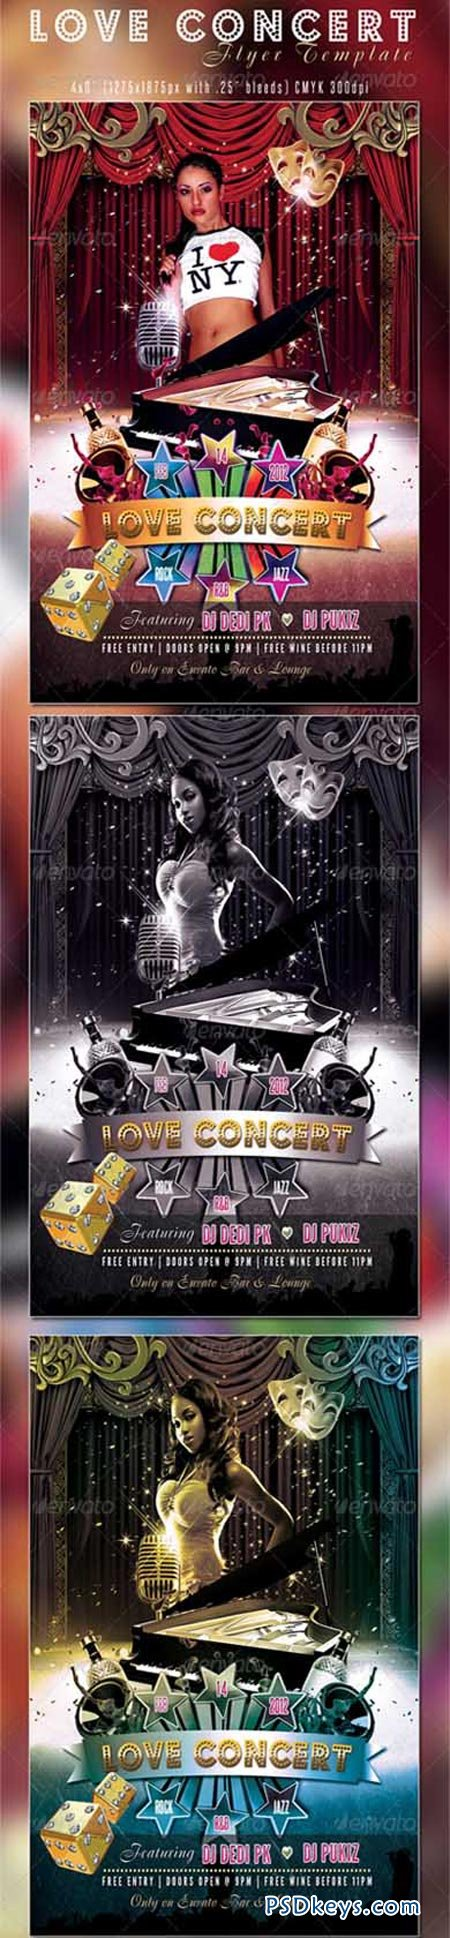 Love Concert Flyer Template 1213911